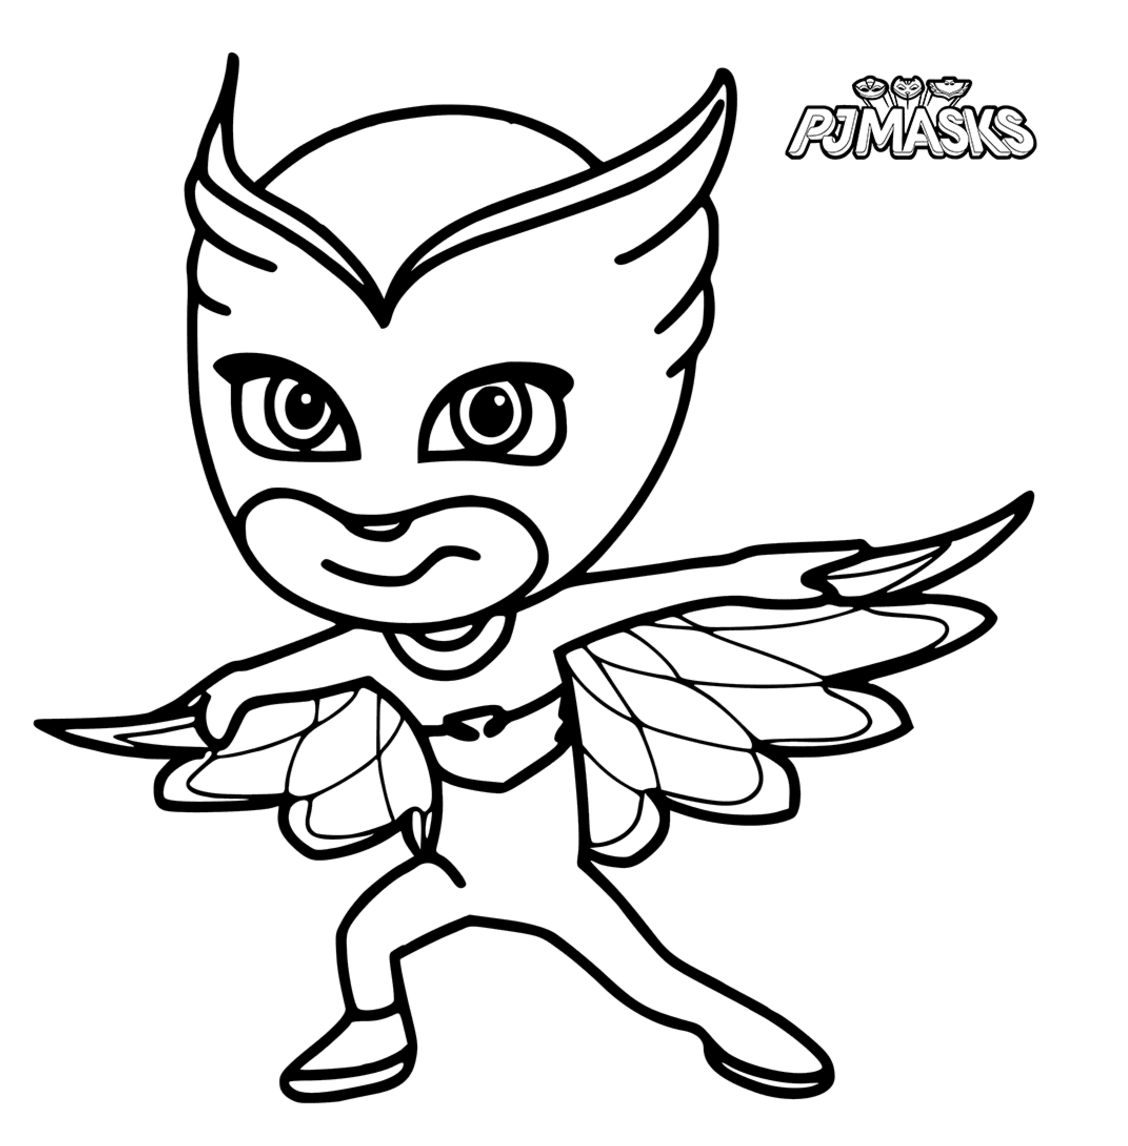 pj max coloring pages PJ Masks Coloring Pages | Kids | Pj masks coloring pages, Pj mask  pj max coloring pages